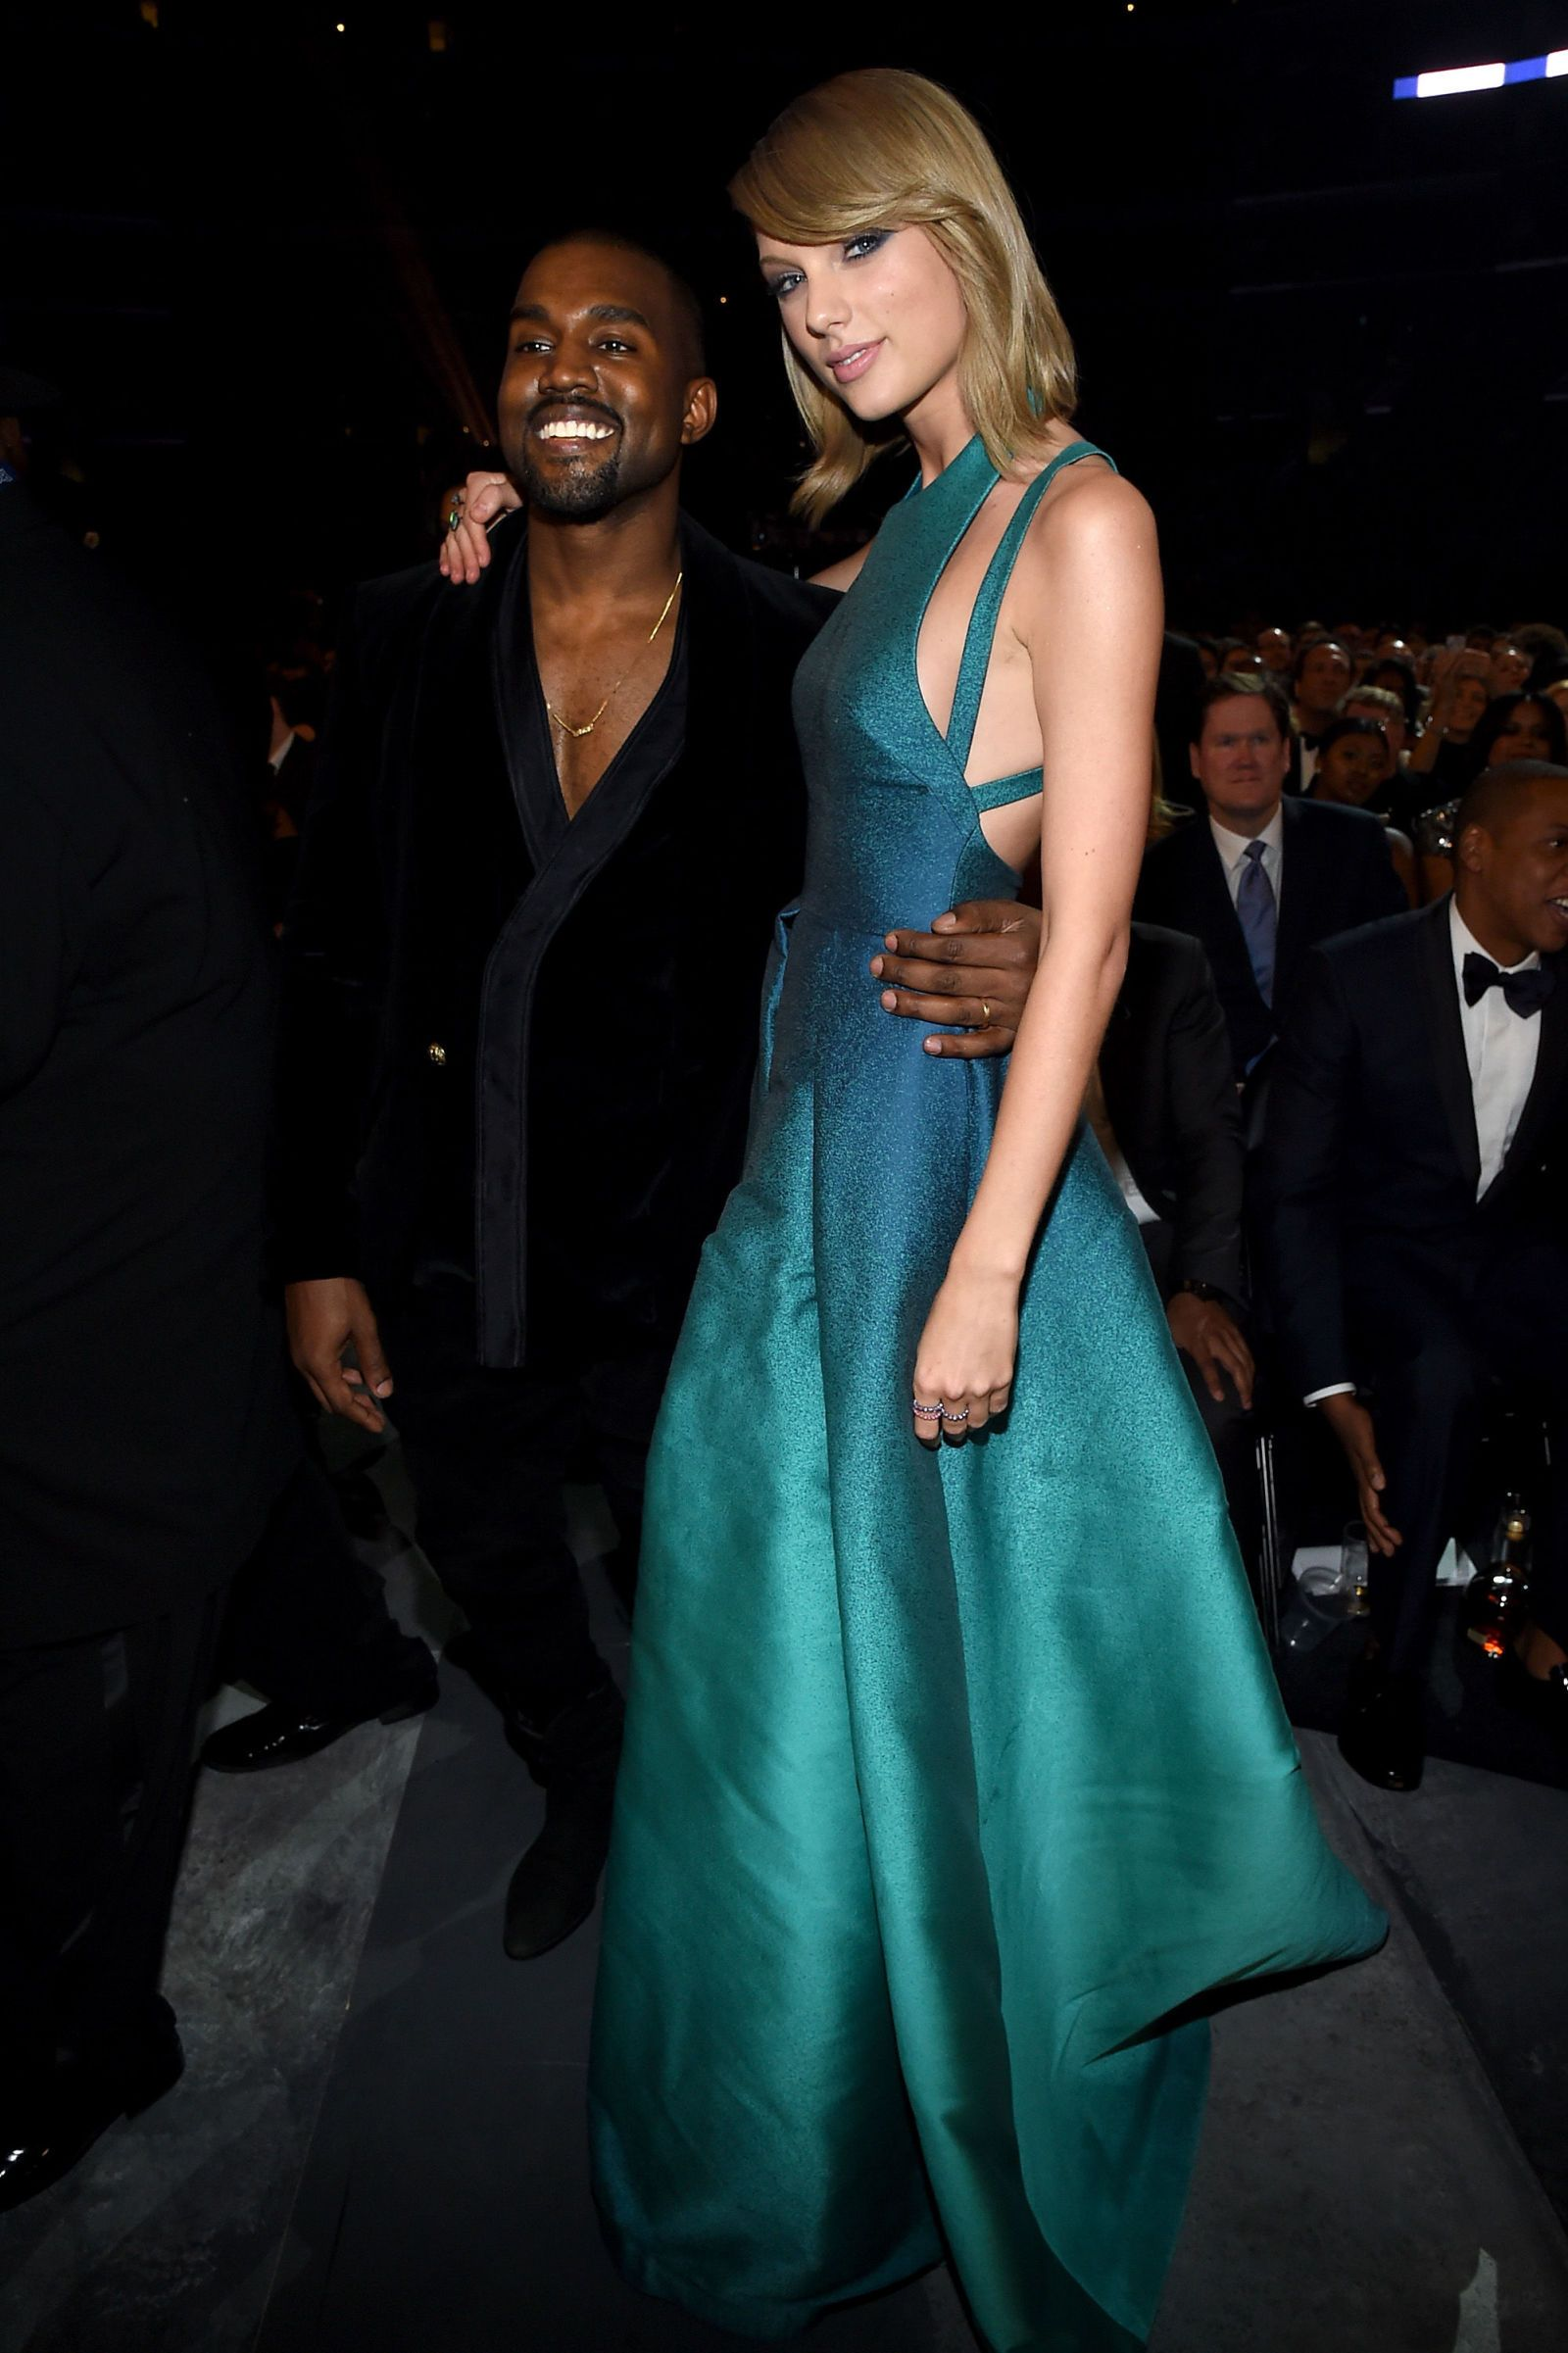 Taylor Swift And Kanye West Are Making Music Together Kanye Taylor Kanye West Taylor Swift